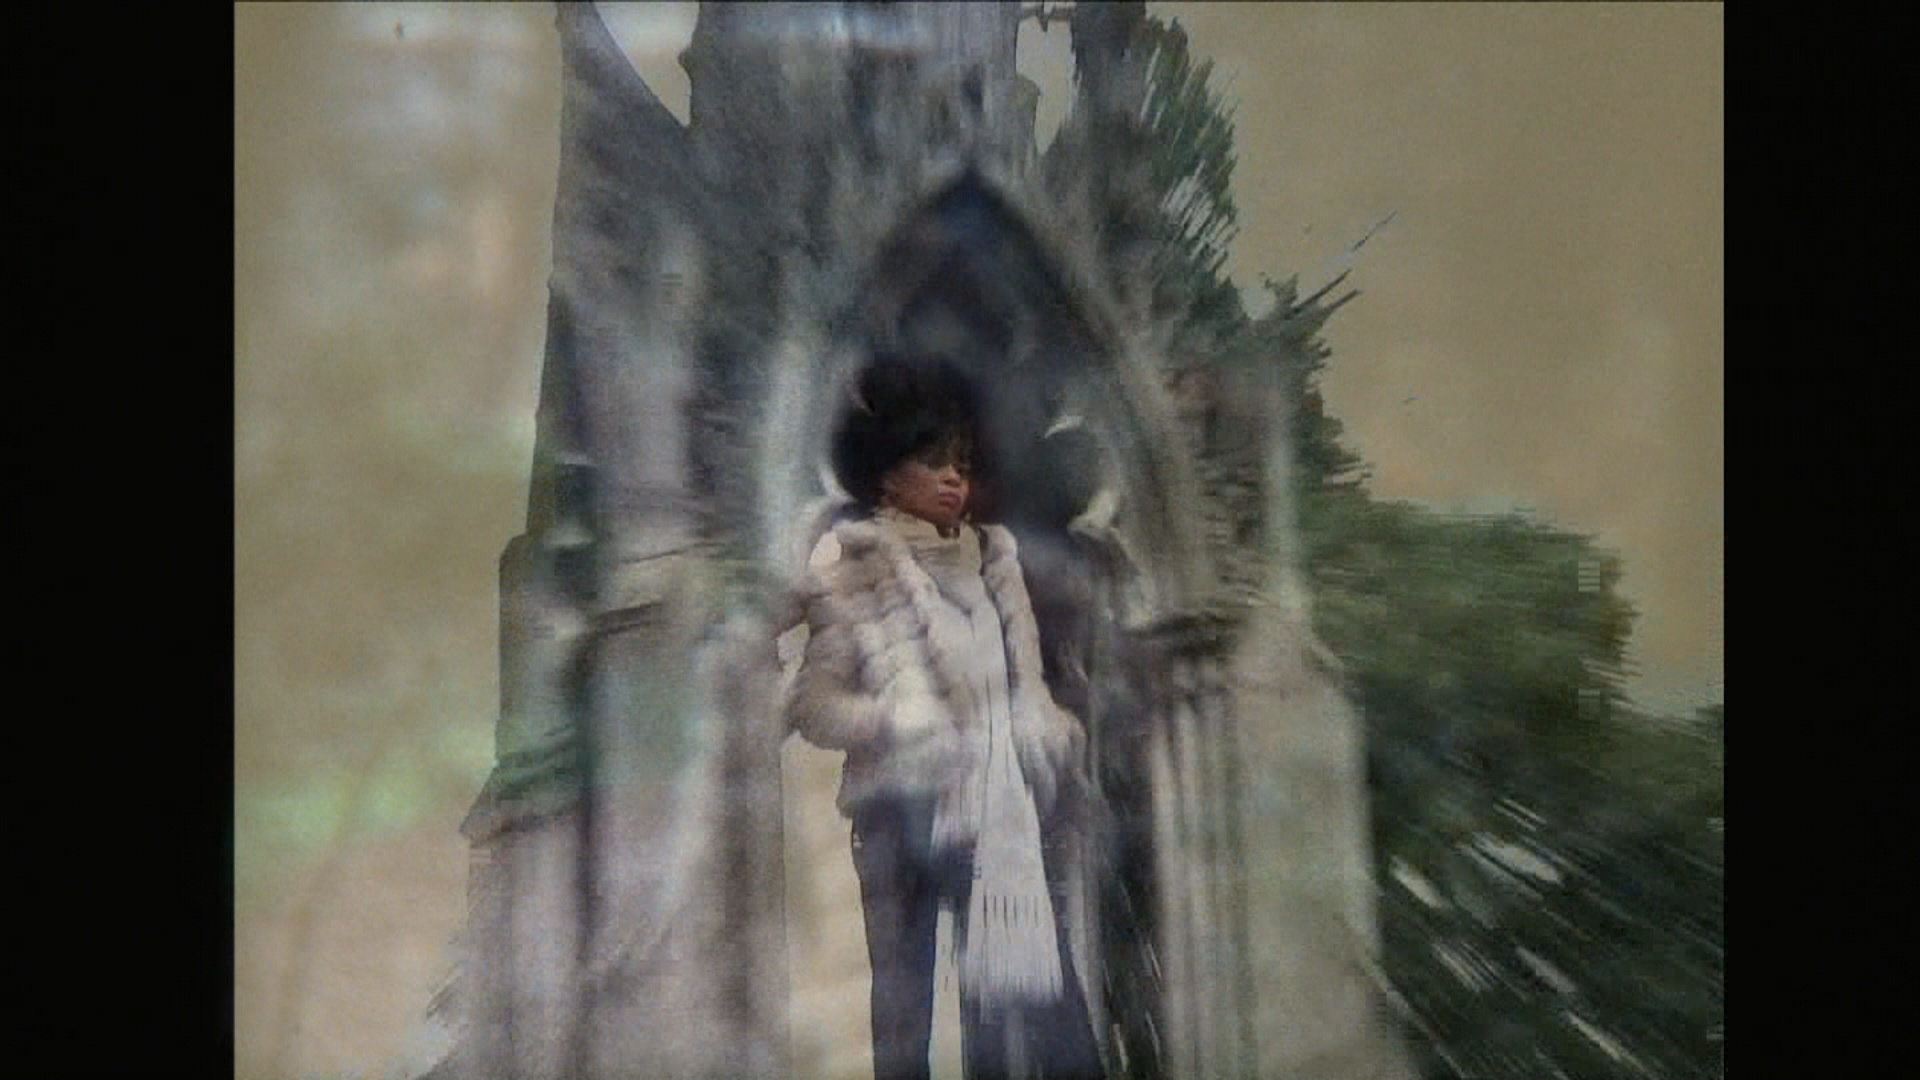 Rohan Quine, 'The Imagination Thief' - film 'ALAIA 34', still 10